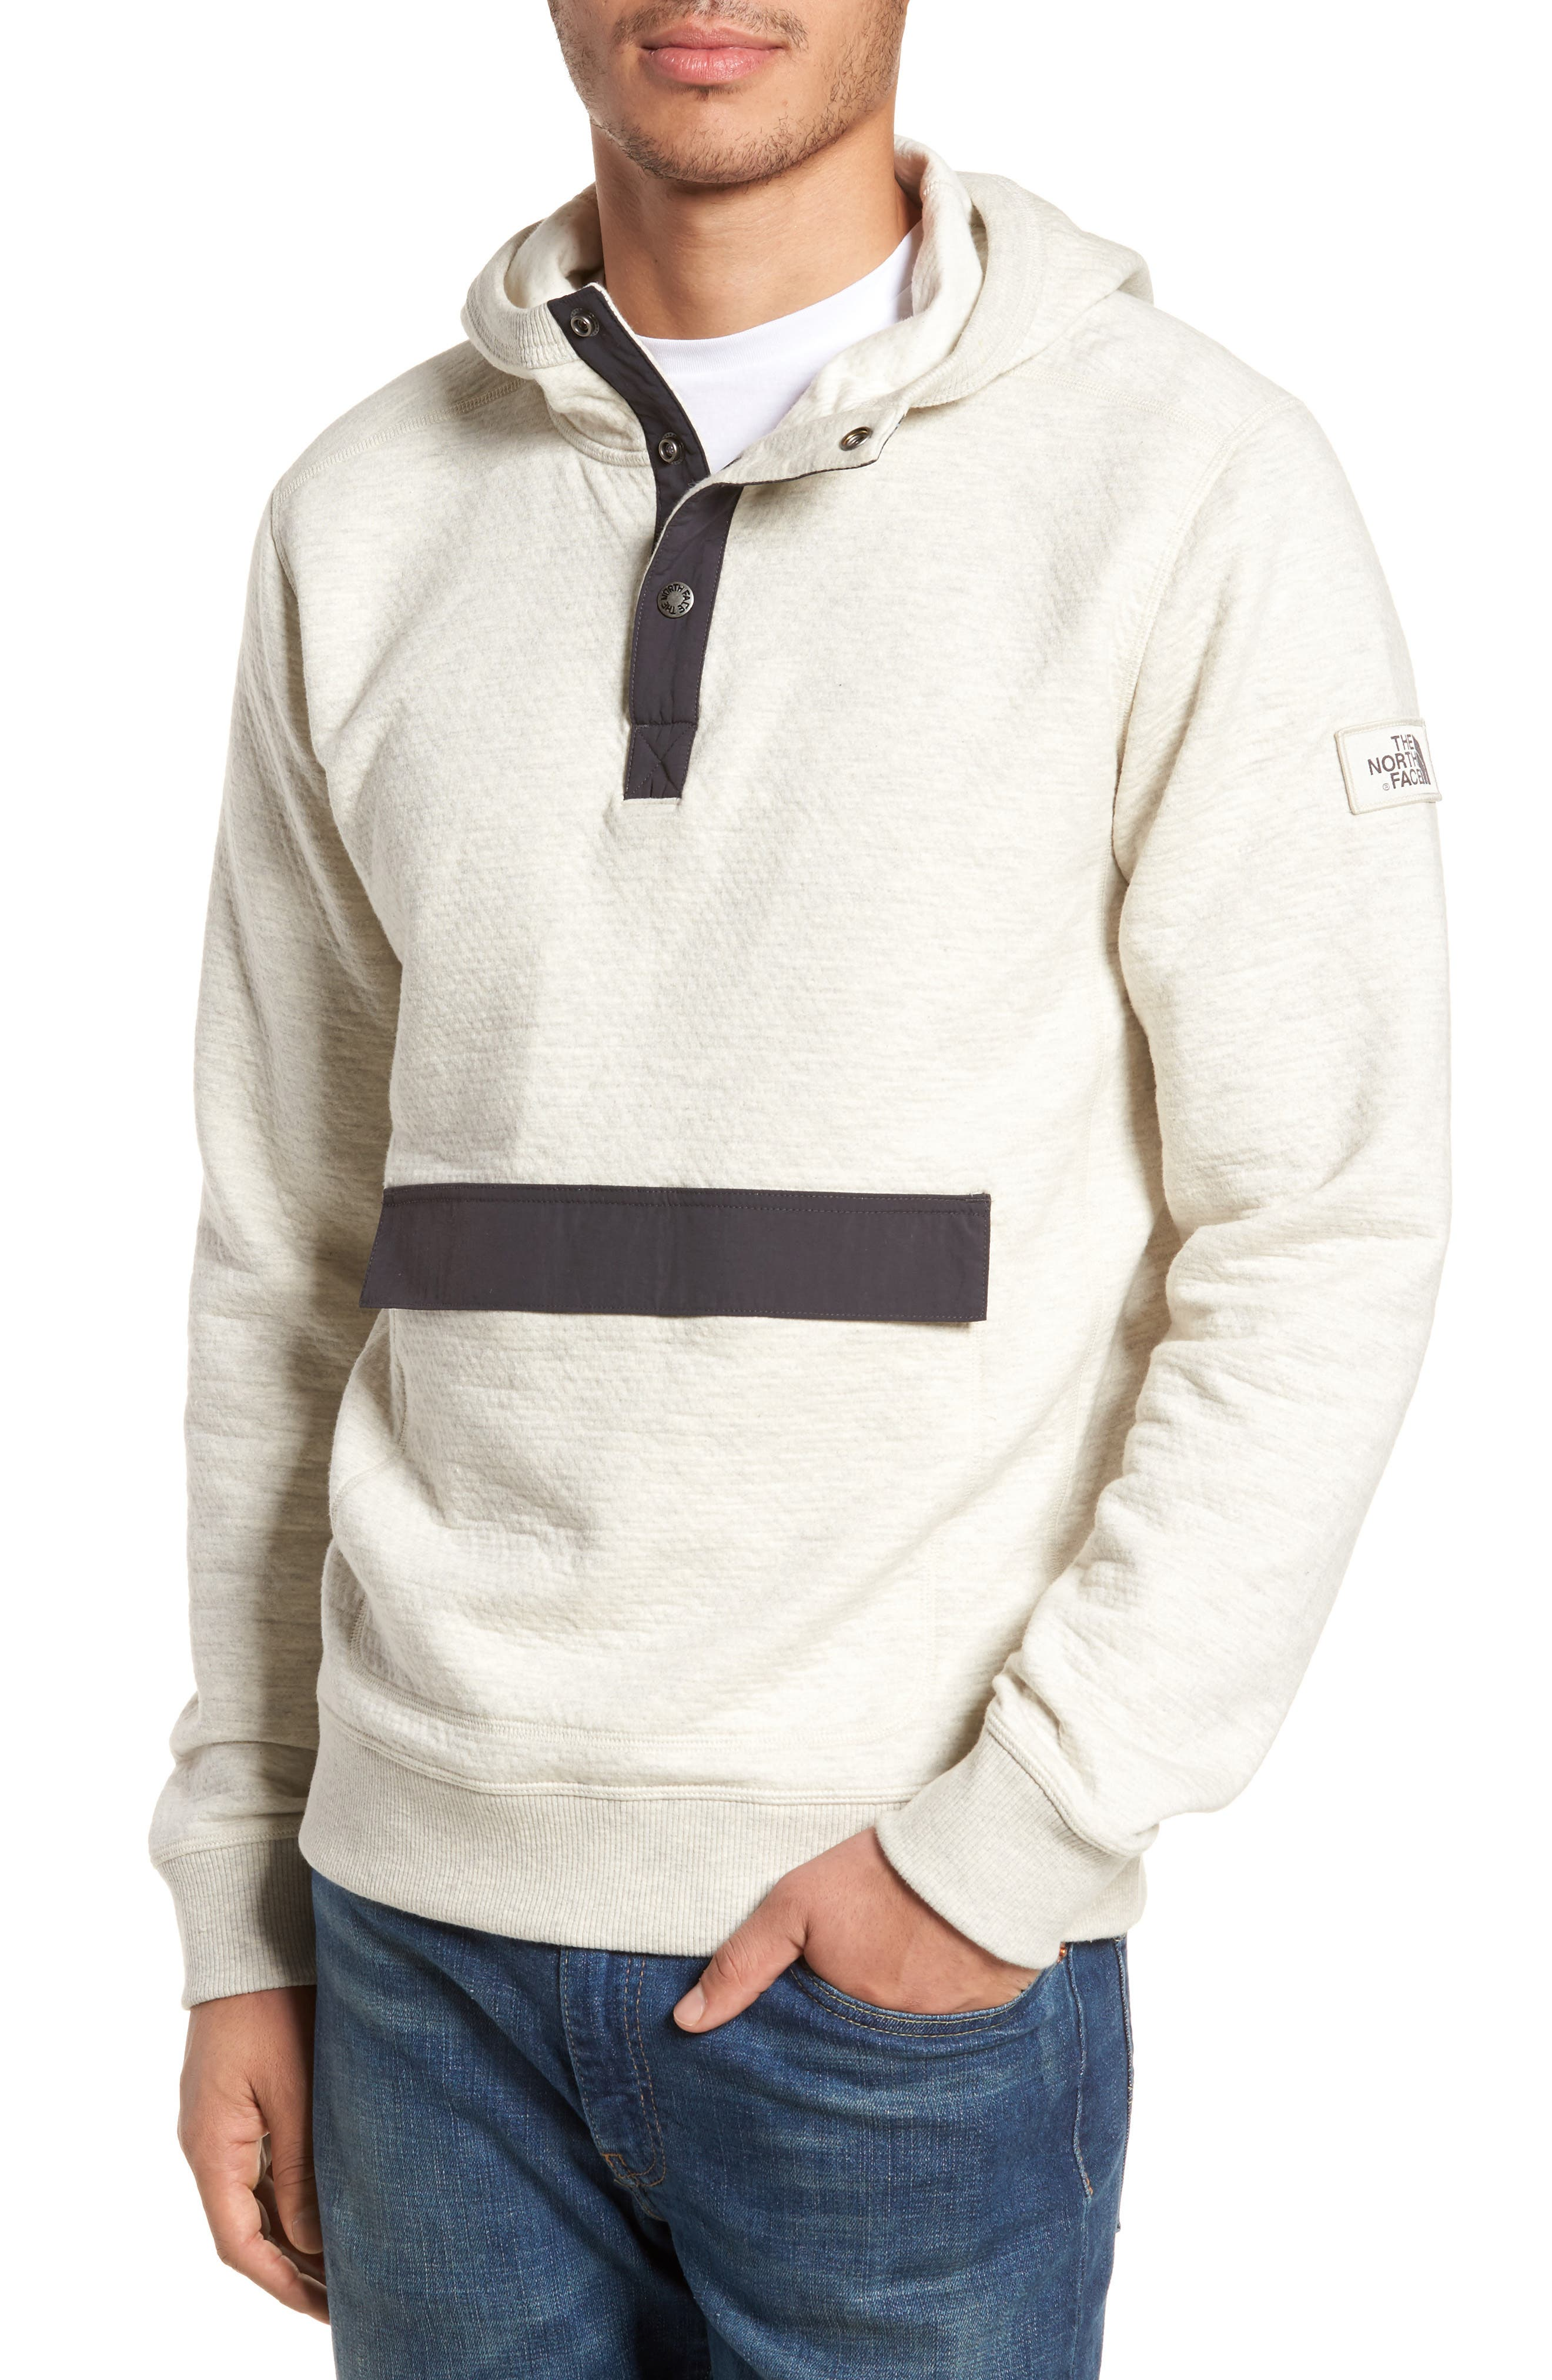 Re-Source Hoodie,                             Main thumbnail 1, color,                             260